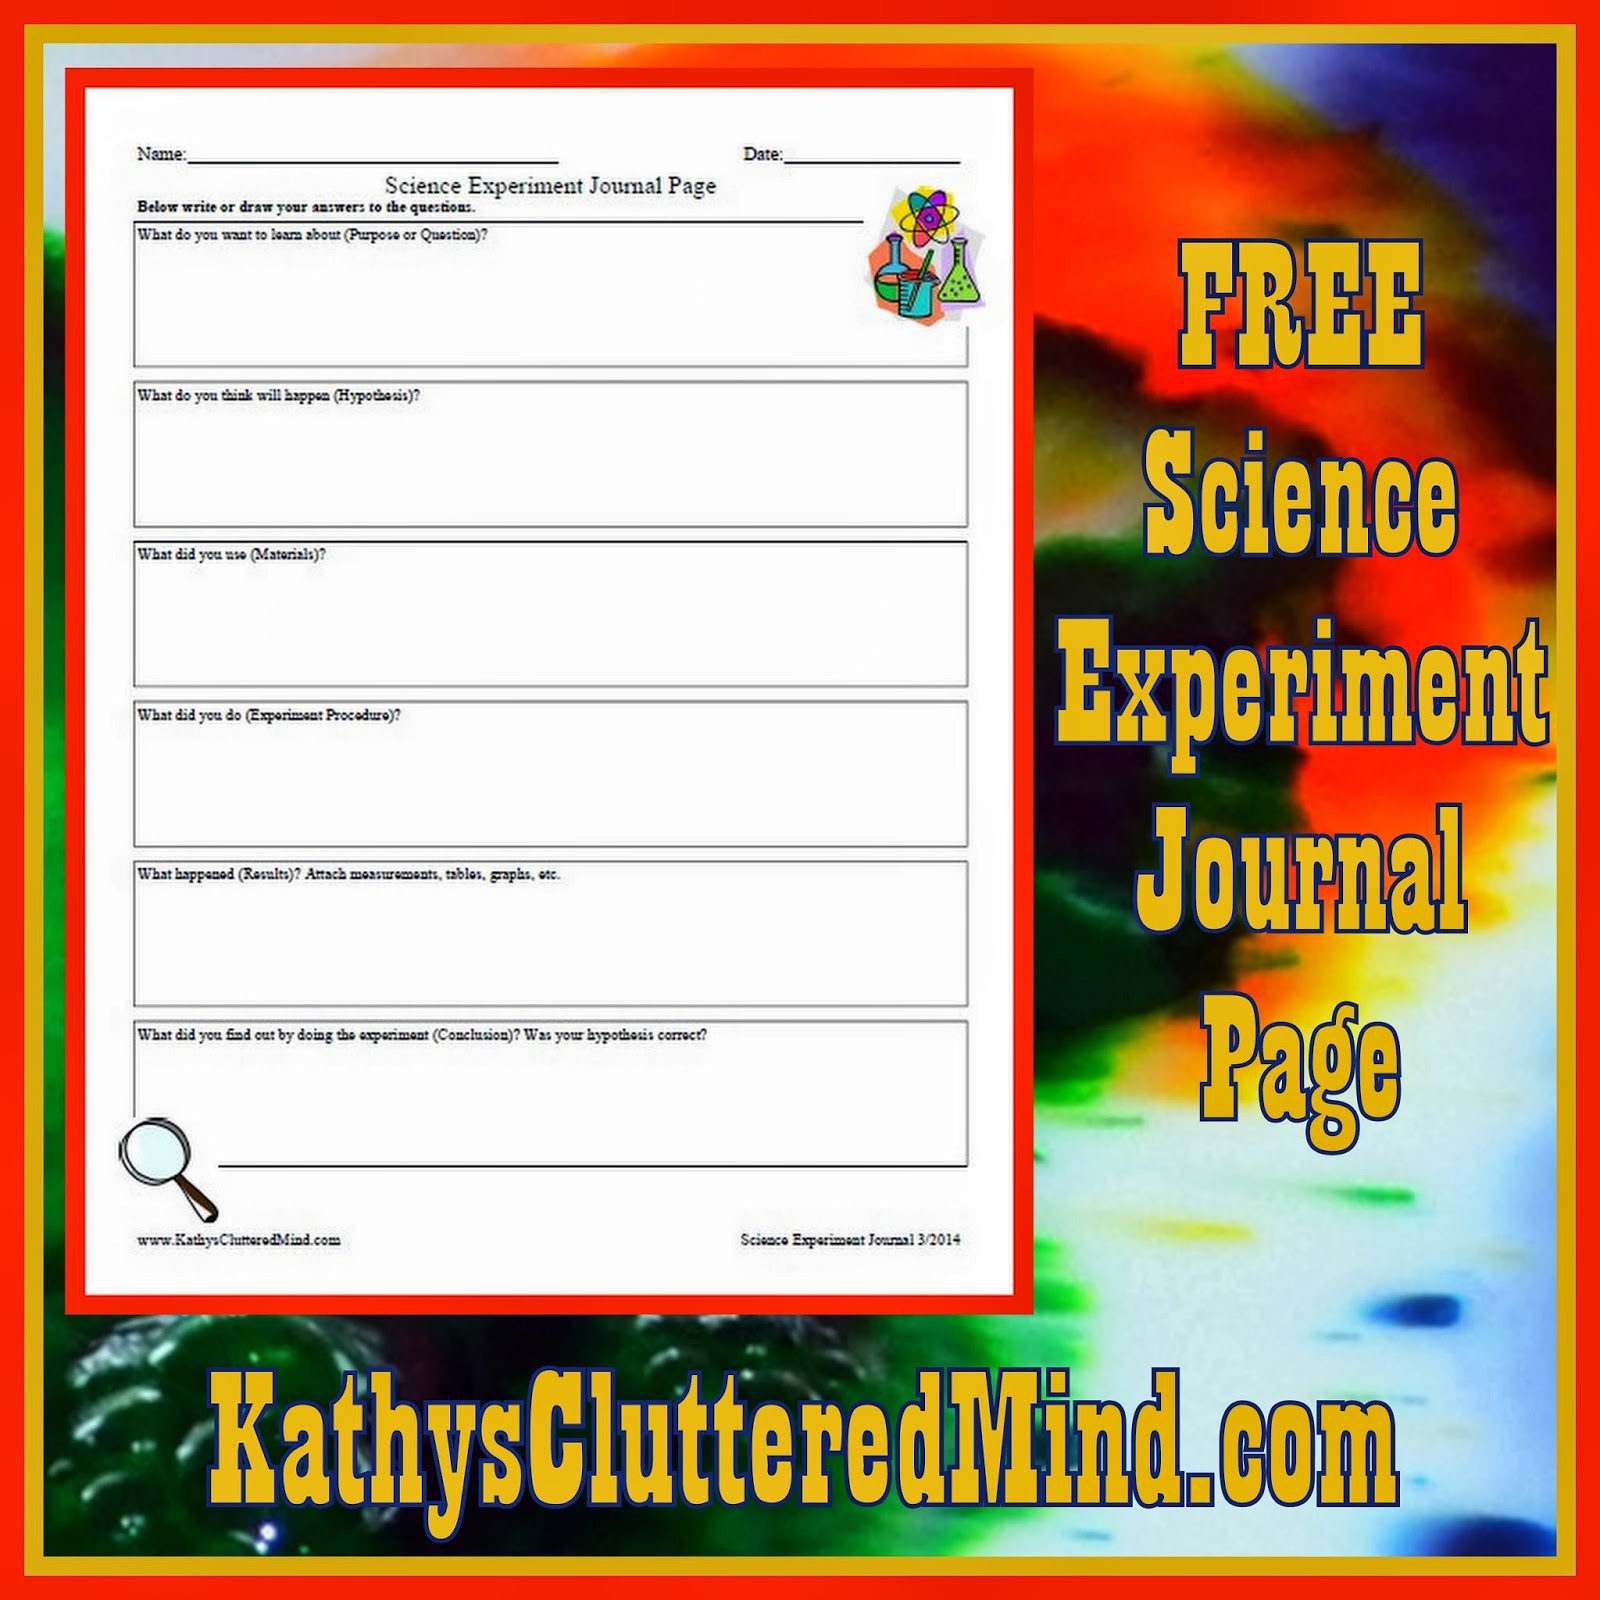 Kathys Cluttered Mind Scienceandmath Amazing Science Dvd Review